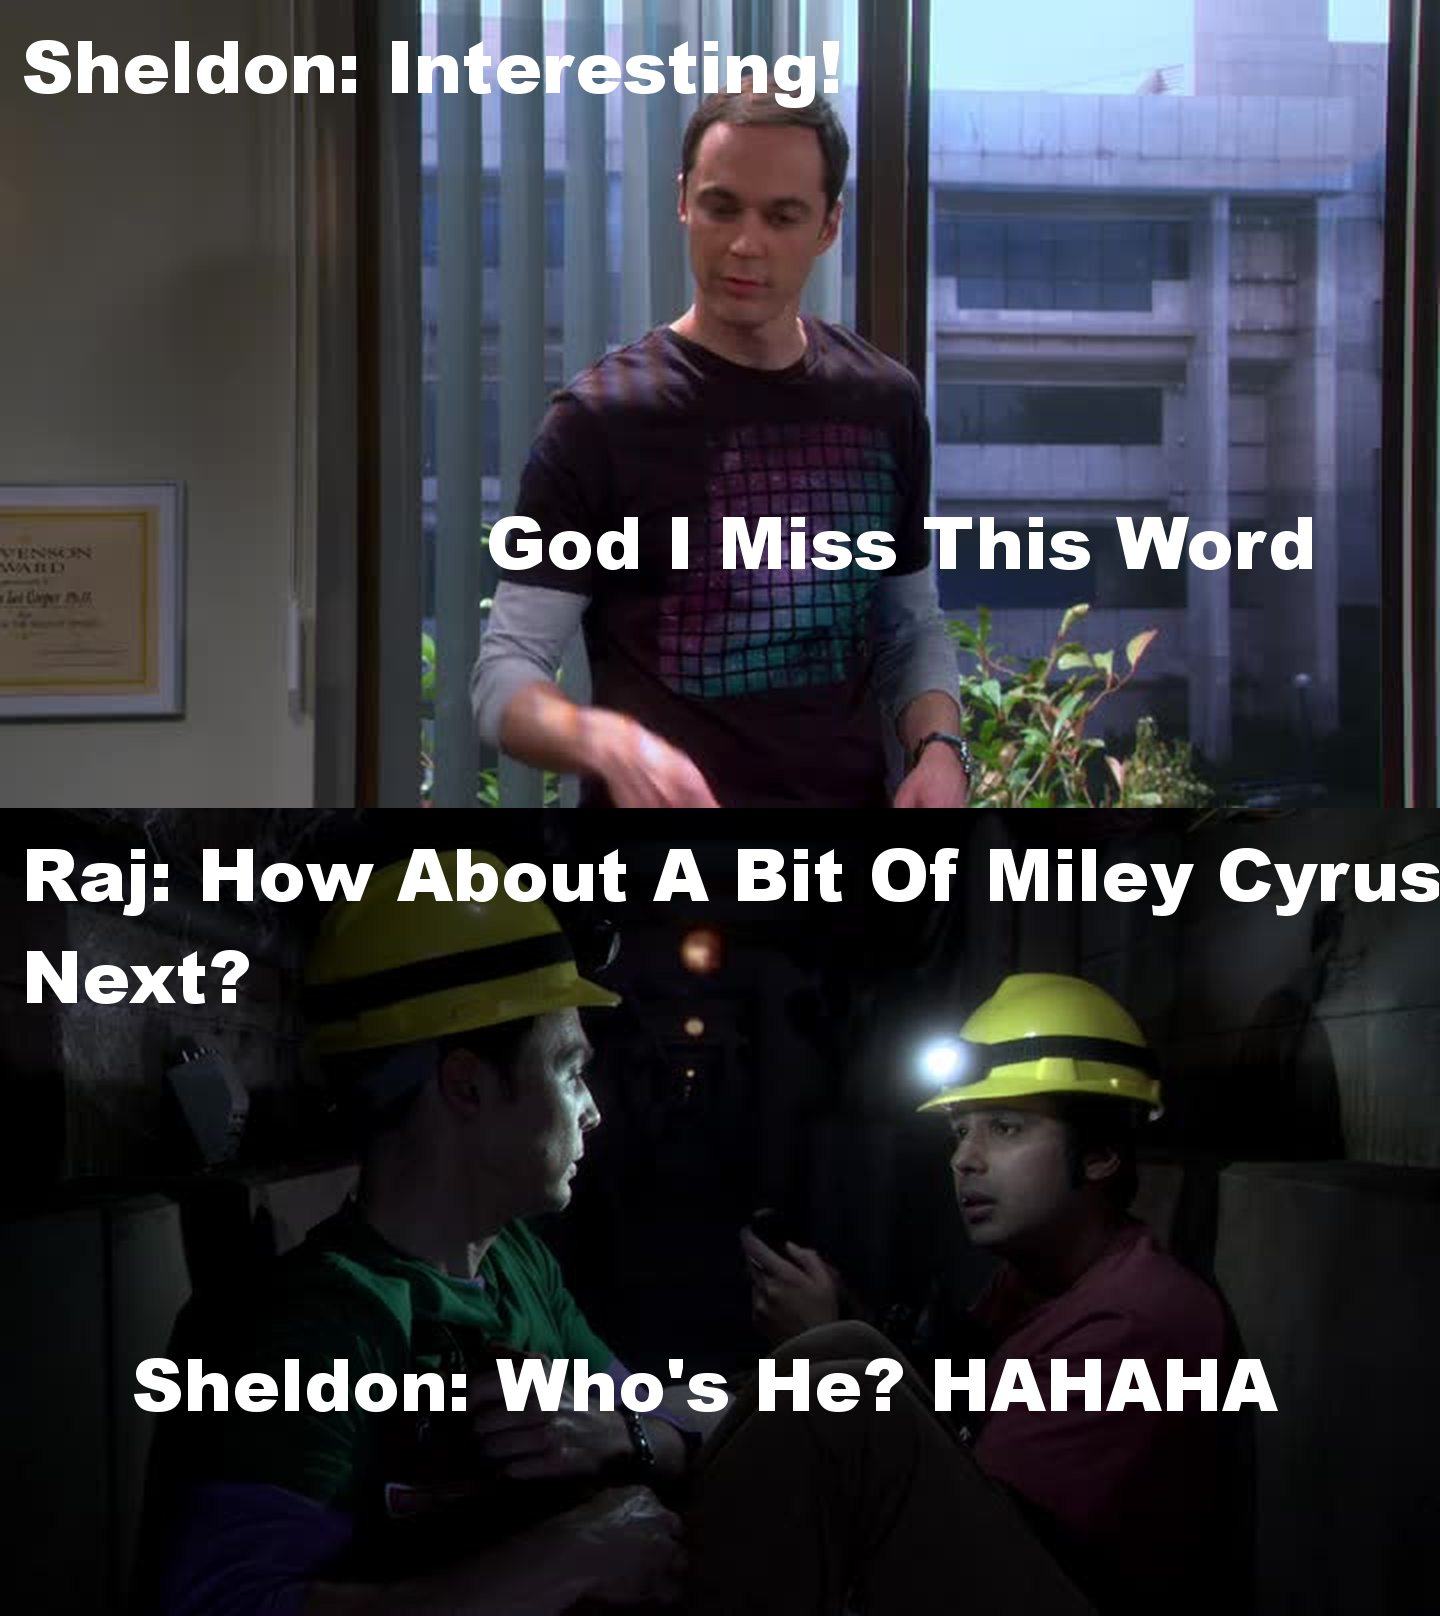 Raj/Sheldon: Loved All The Scenes With Them! But the scene with Rajesh explaining to Sheldon about who's Miley/Hannah was too funny.